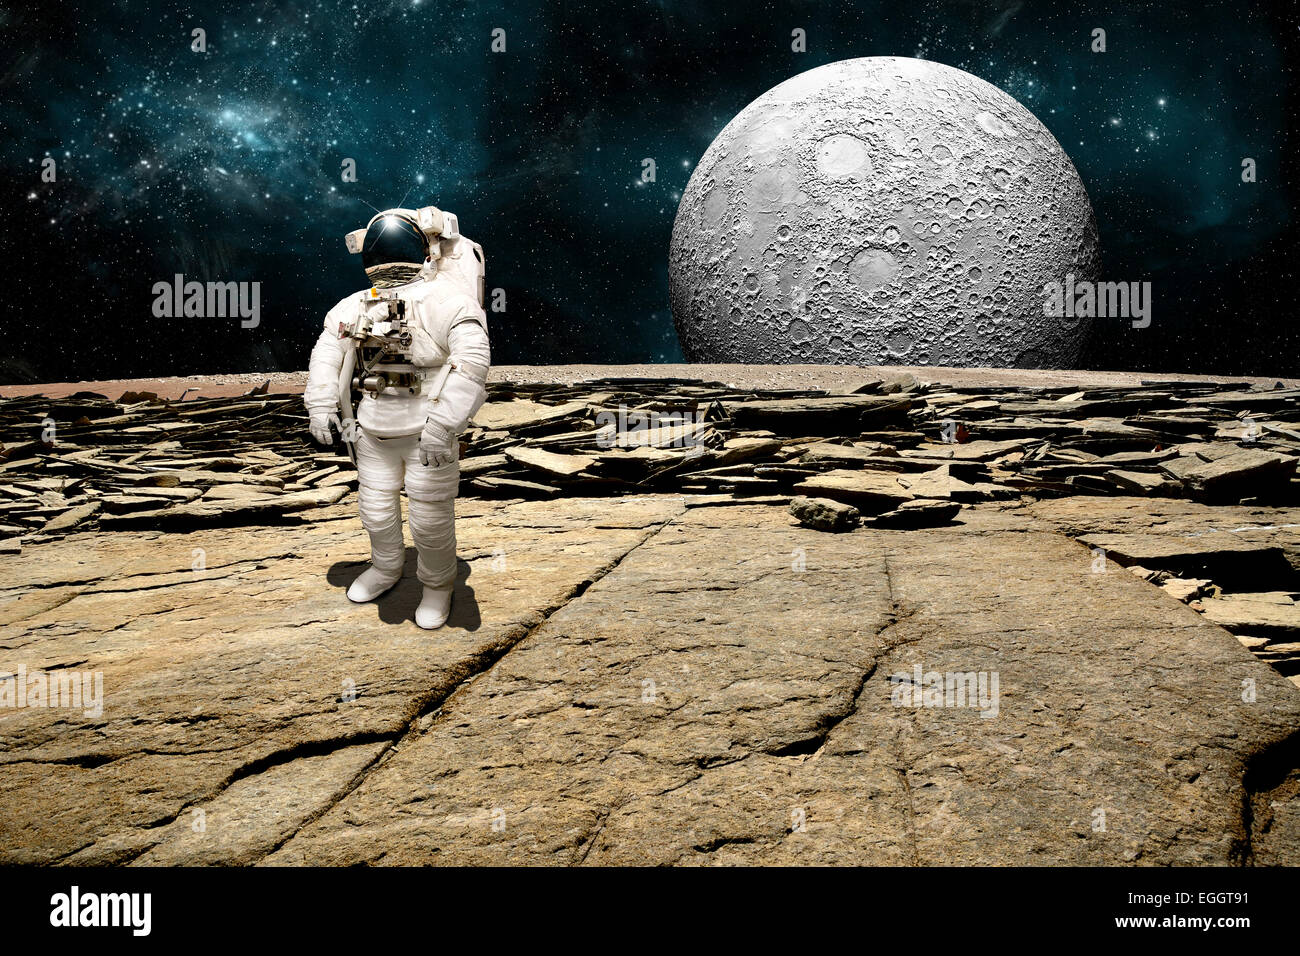 An Astronaut Surveys His Situation After Being Marooned On A Barren